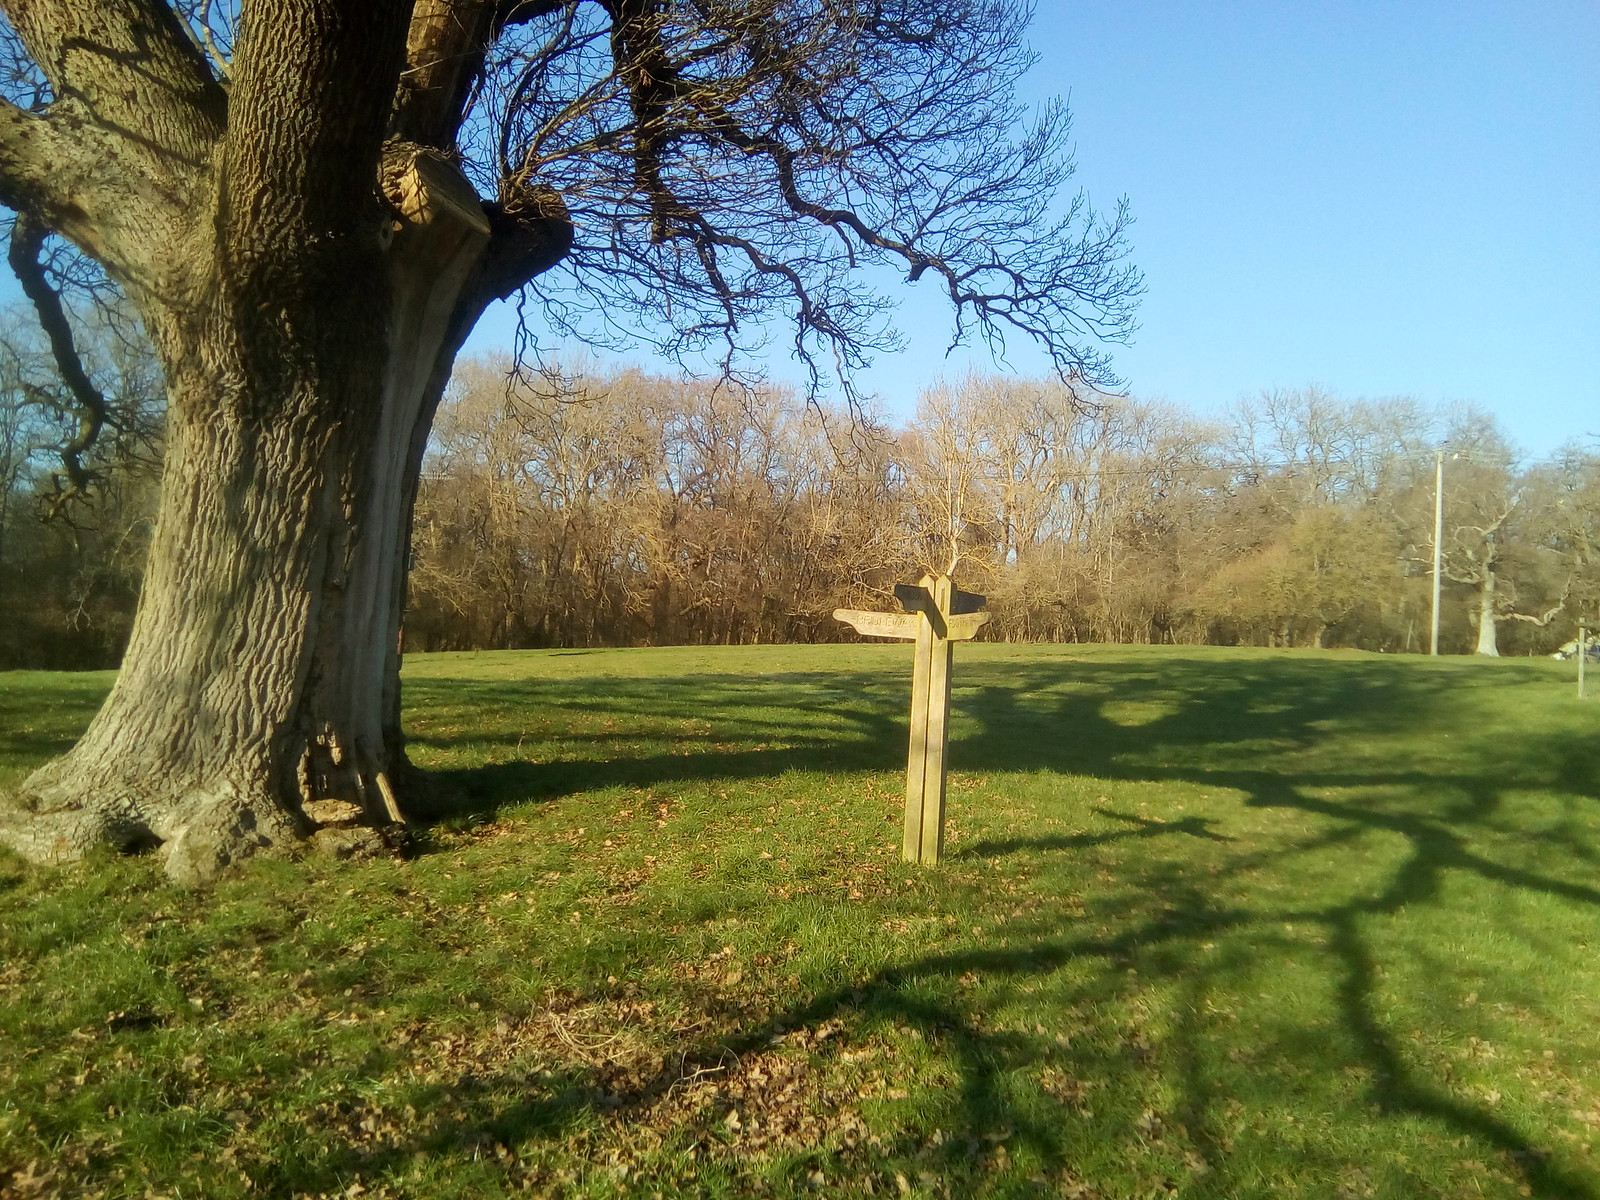 Finger post Field, field, field and oak tree